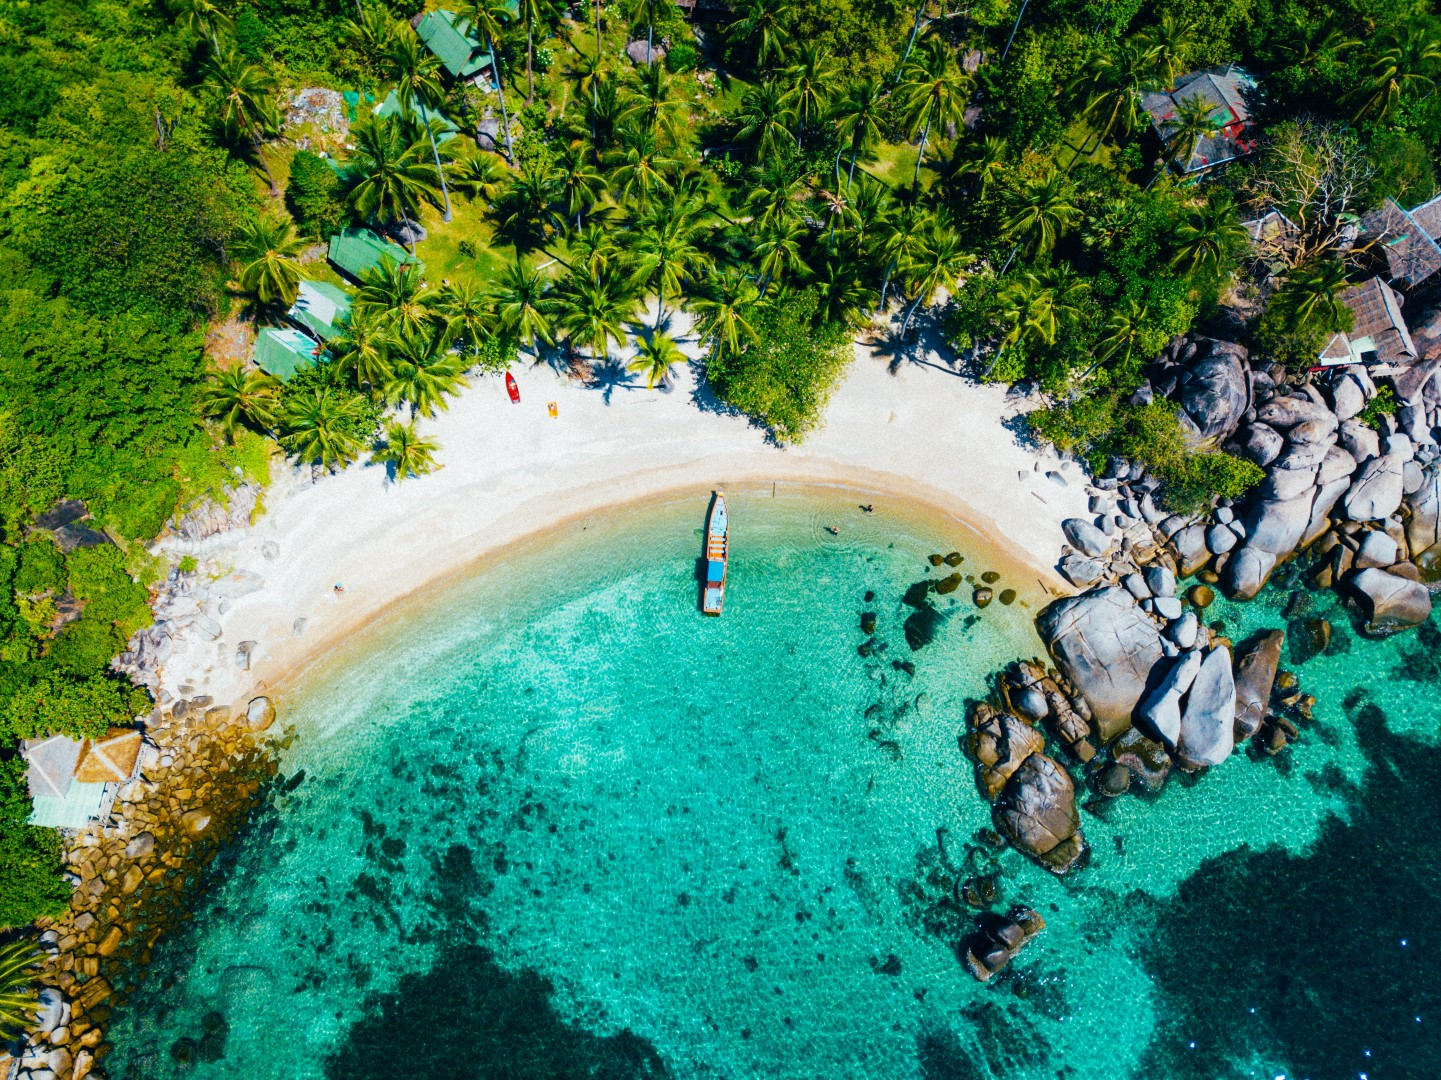 8ad0eb9ed4b 13 Fun Things to do in Koh Tao, Thailand - Every Steph